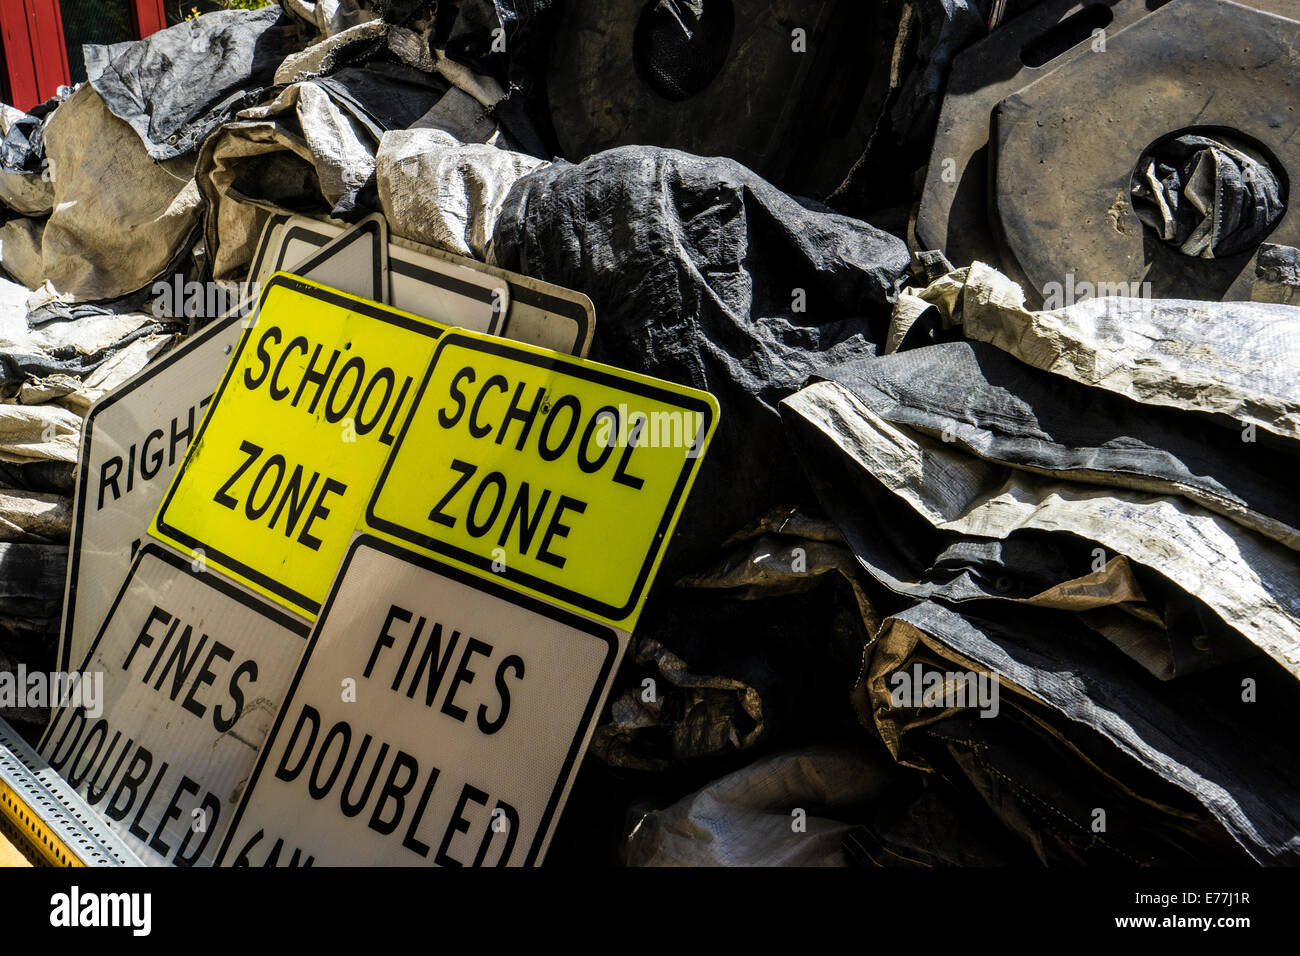 multiple 'school-zone' 'fines-doubled' road signs at construction site - Stock Image